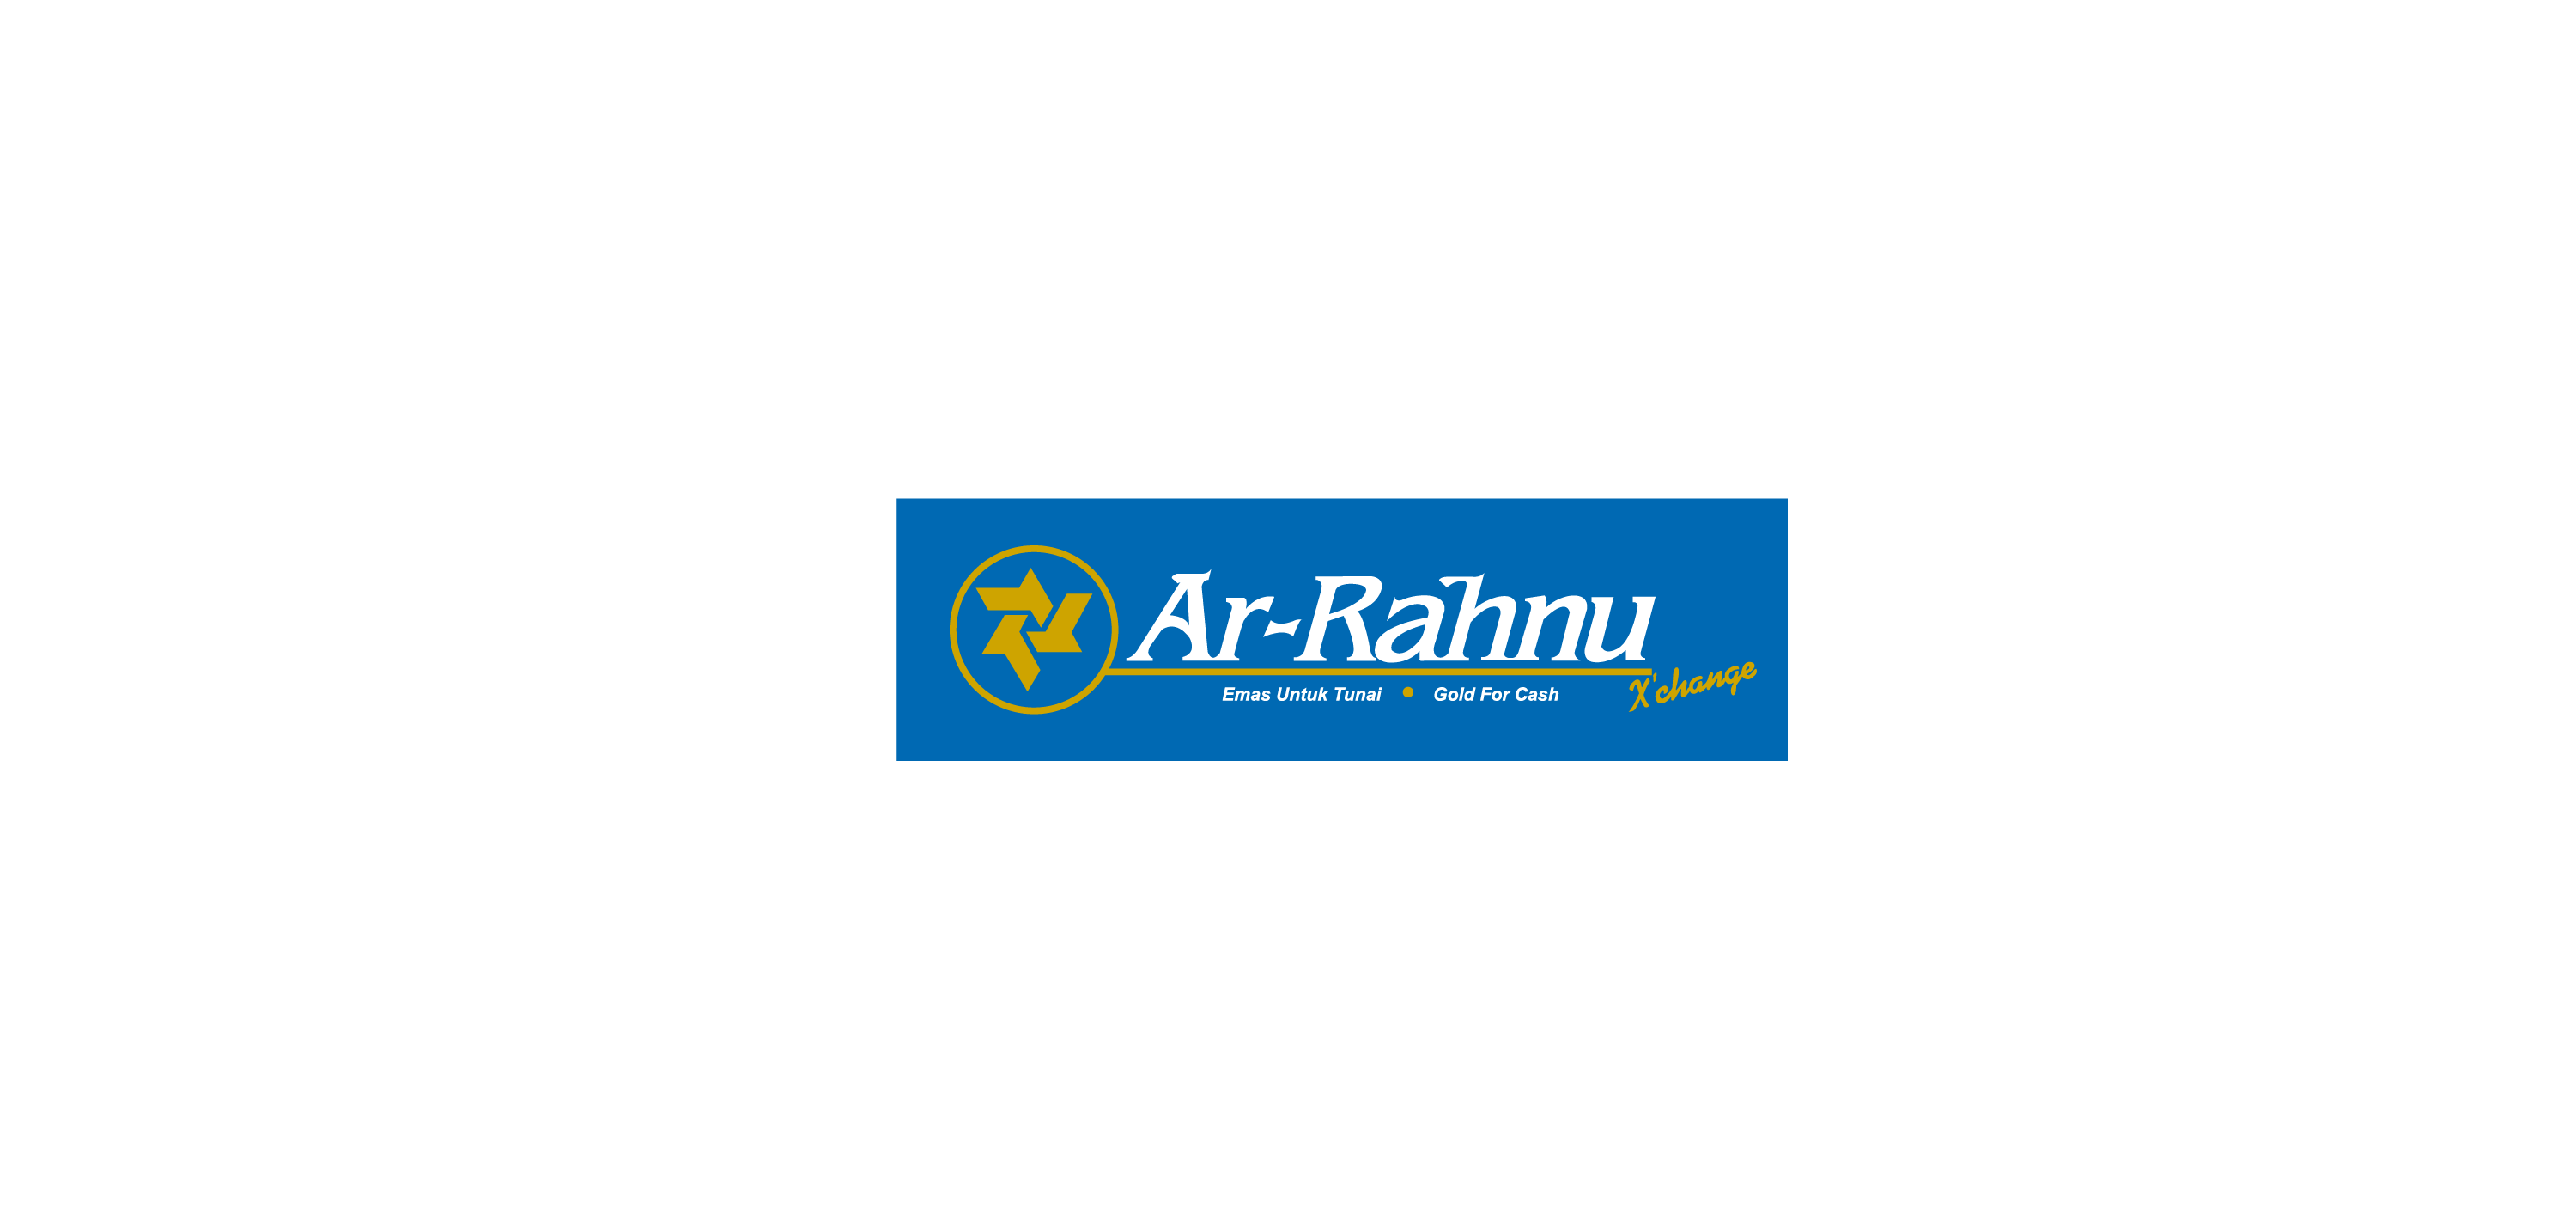 arrahnu logo vector